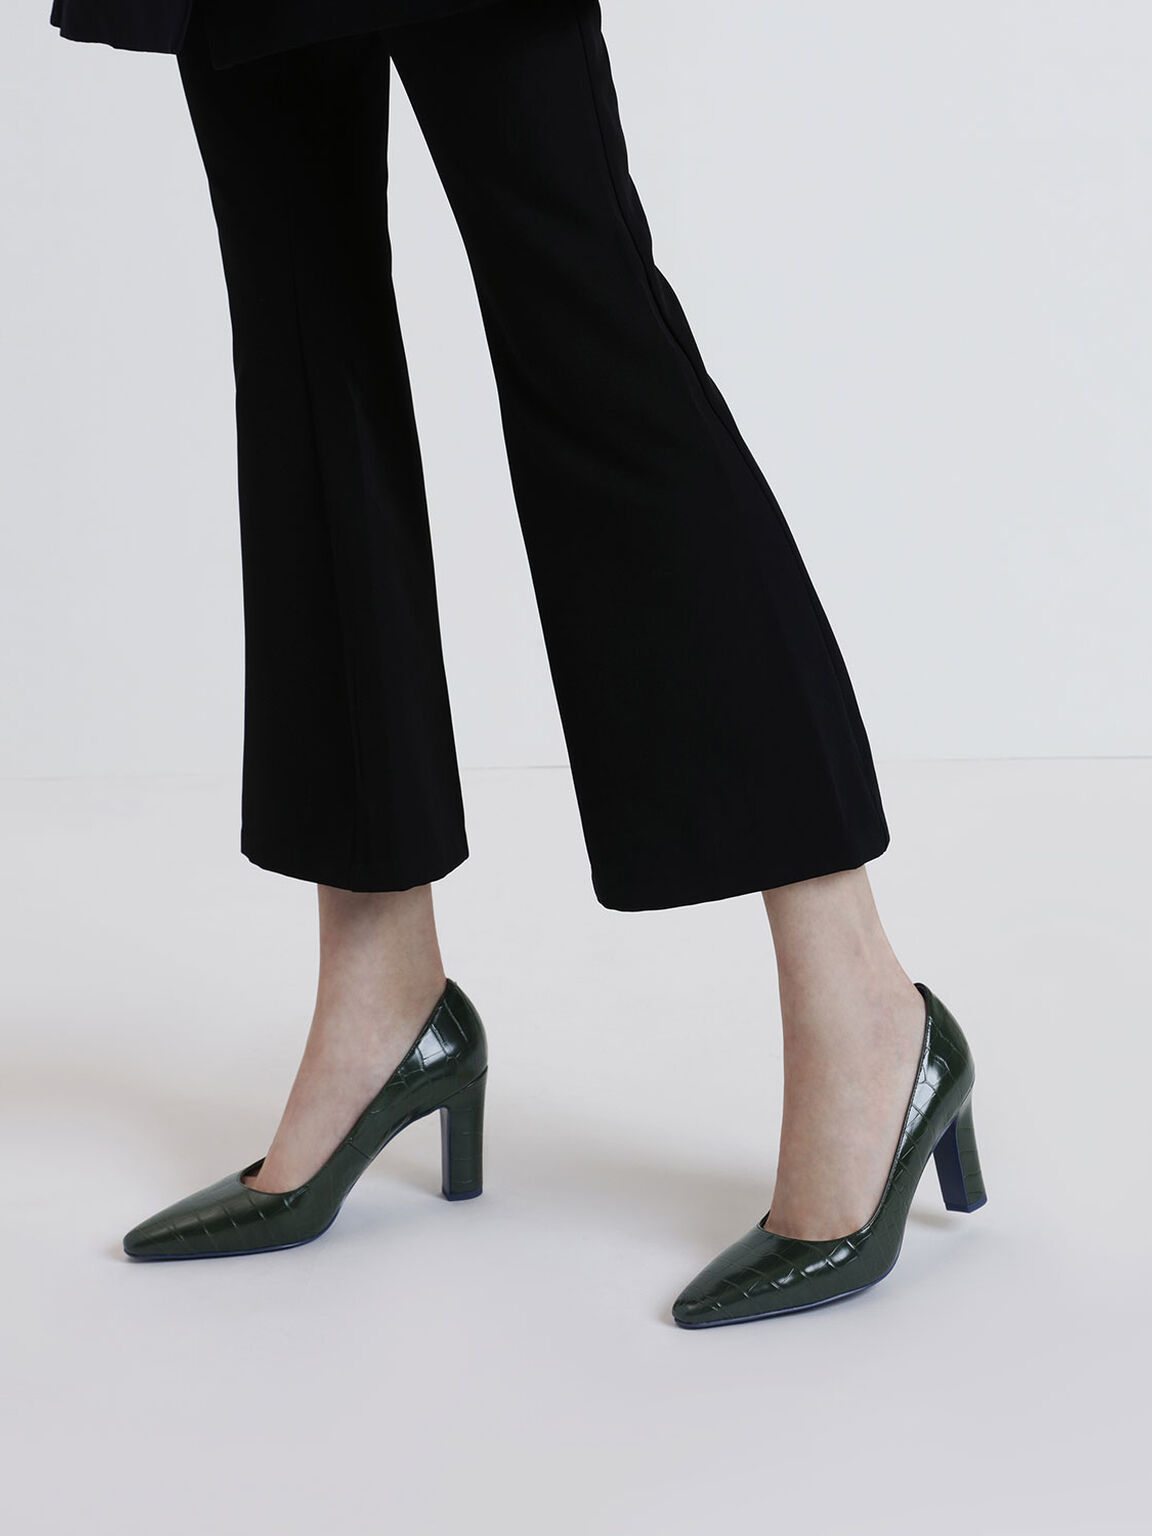 Croc-Effect Pointed Toe Chunky Heel Pumps, Green, hi-res